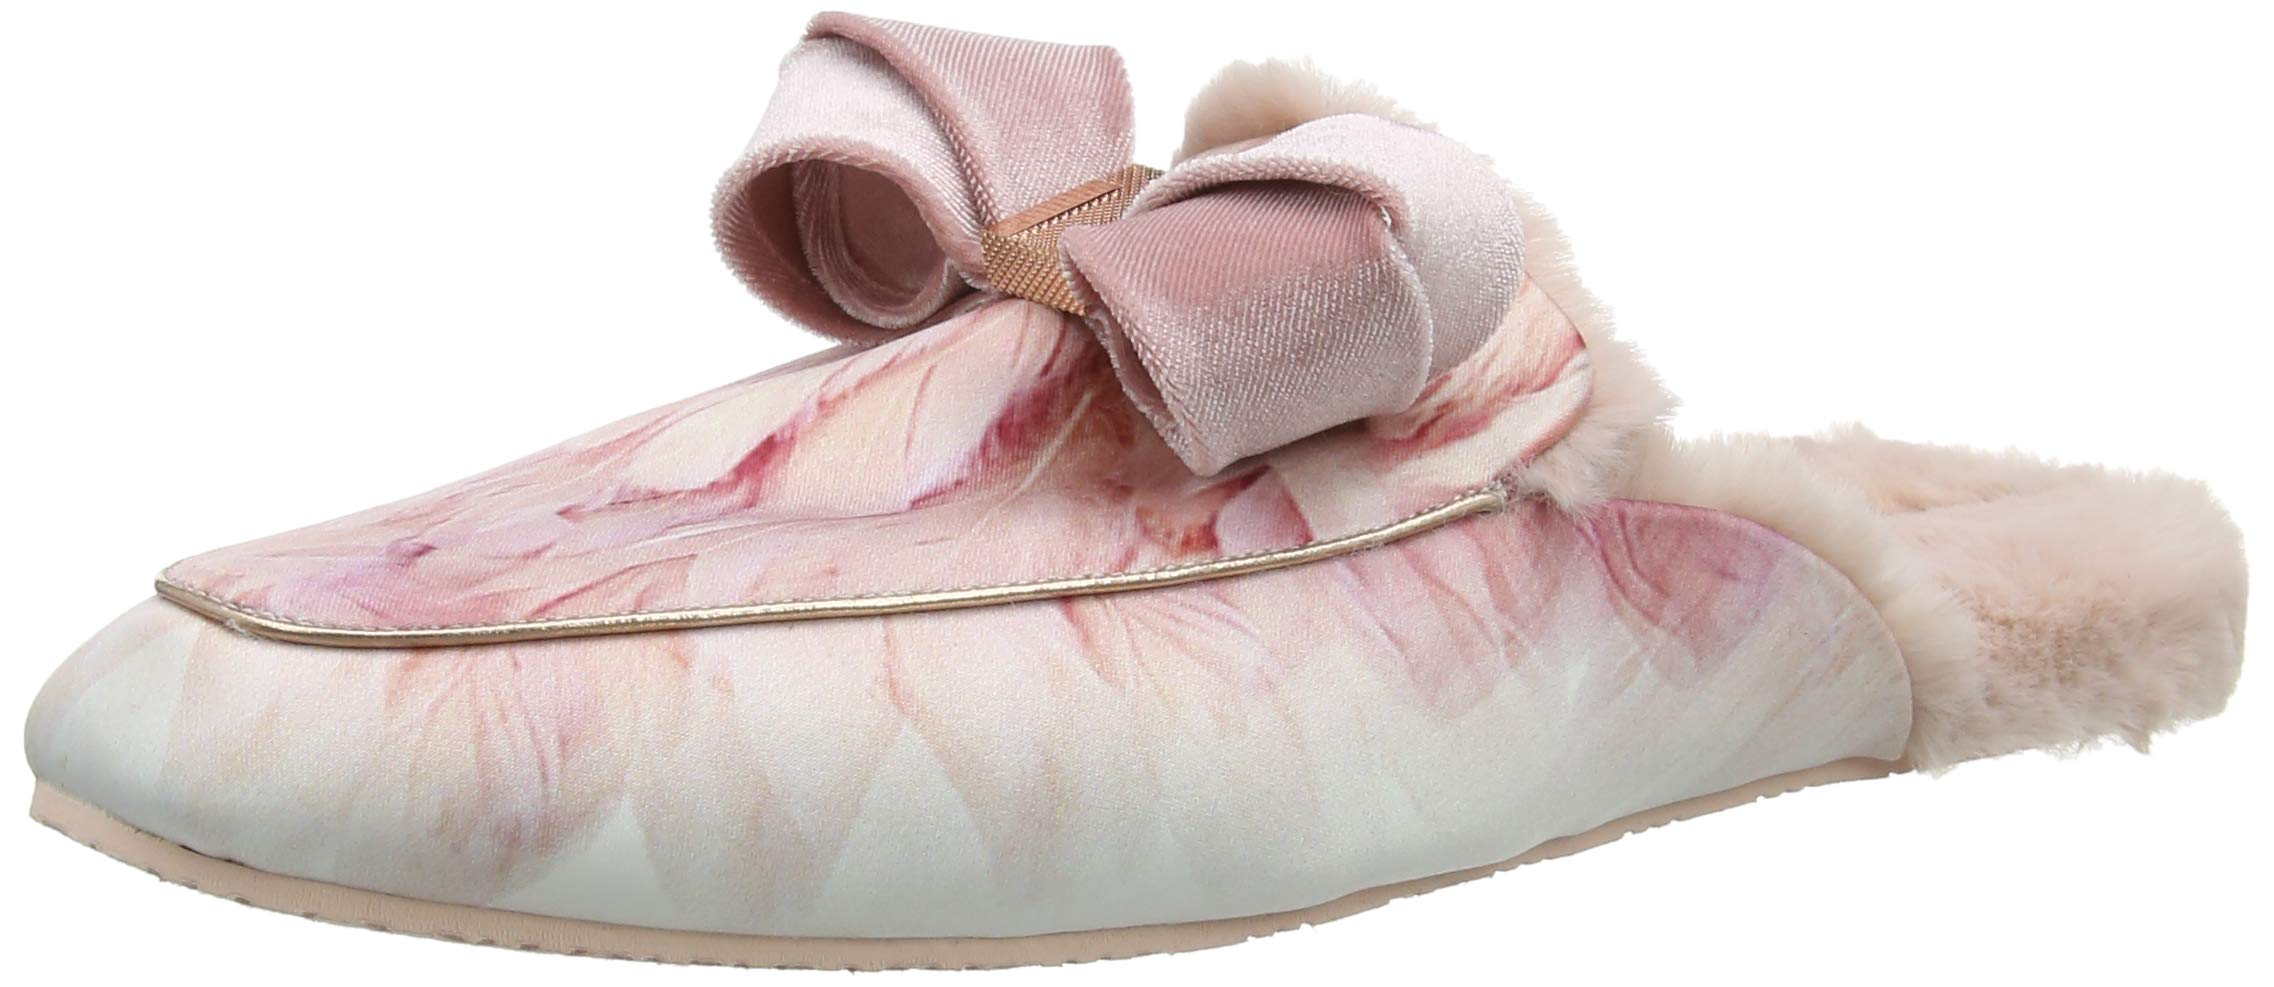 Ted BhaybeChaussons Baker Fall37 Eu Ang Mules FemmeMulticoloreangel 7ybf6g